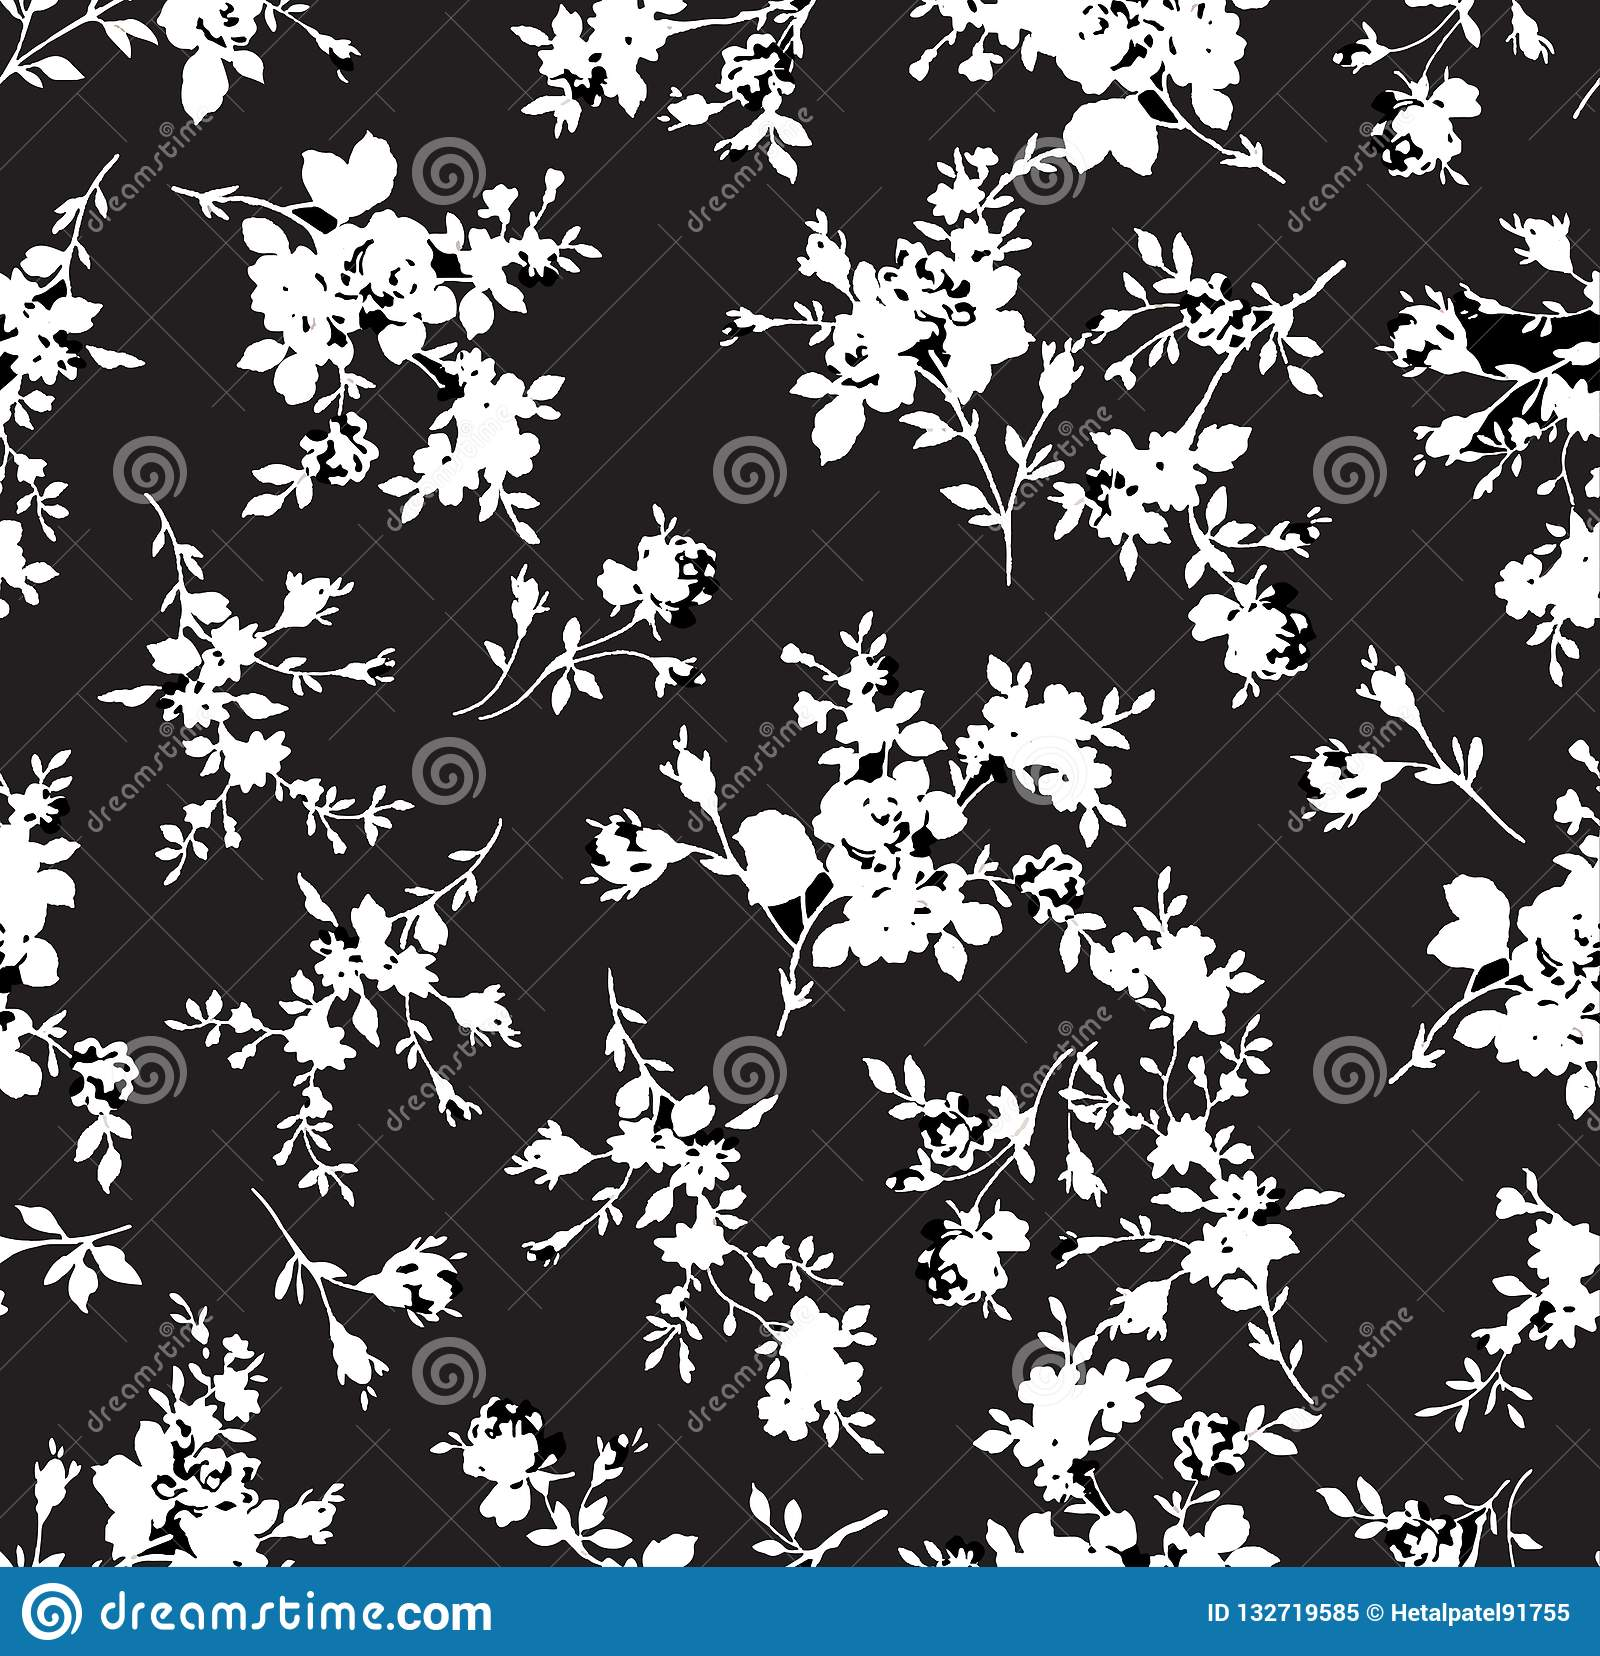 Vintage black flowers pattern